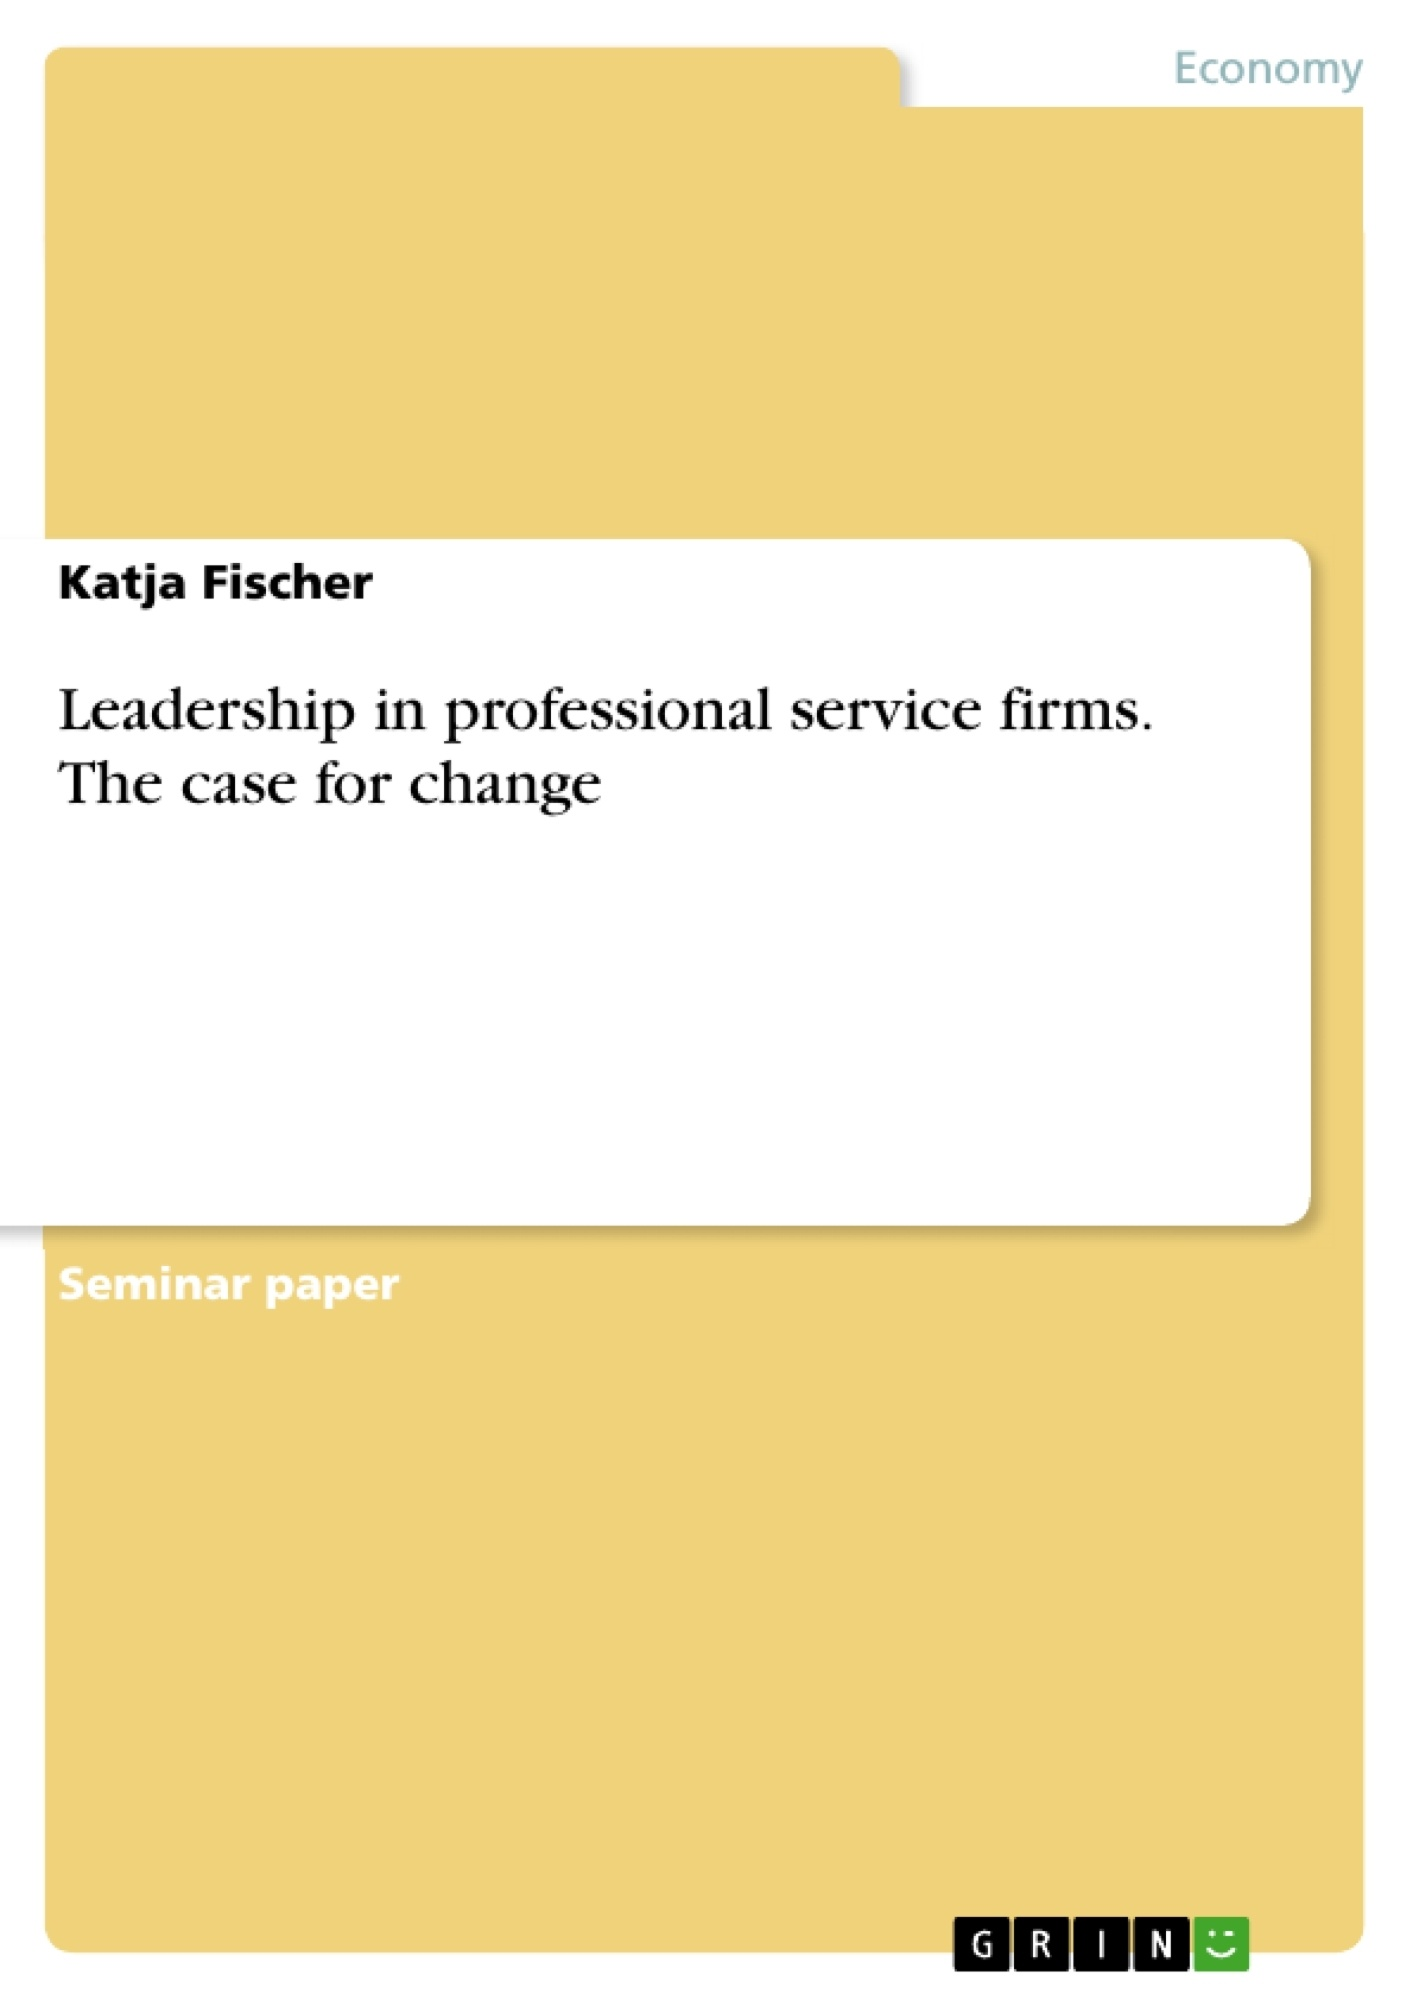 Title: Leadership in professional service firms. The case for change